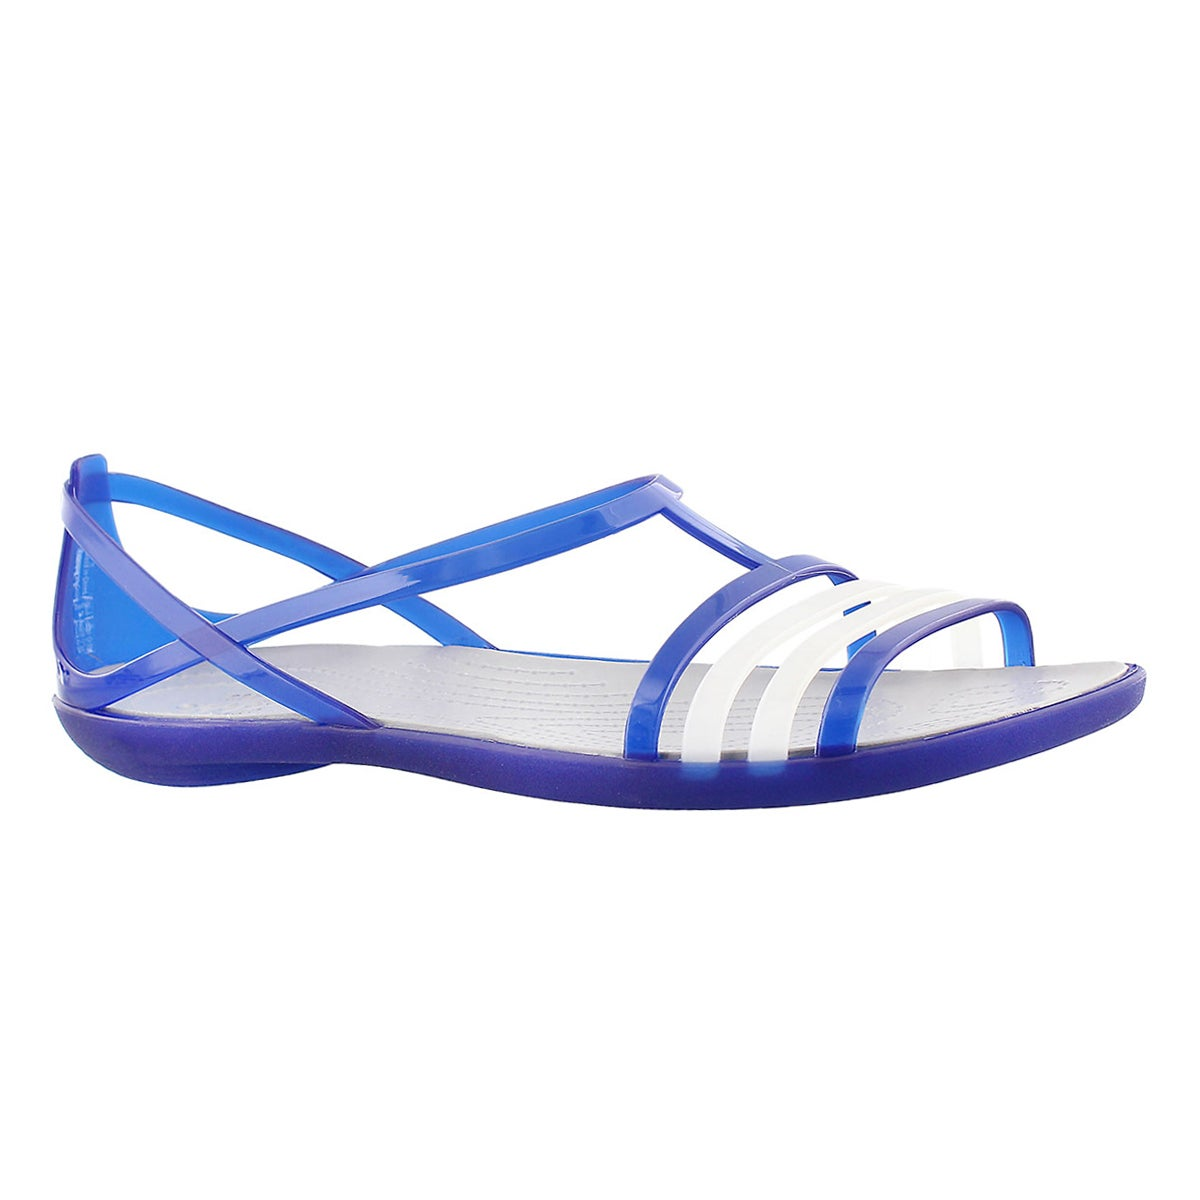 Women's ISABELLA blue sandals